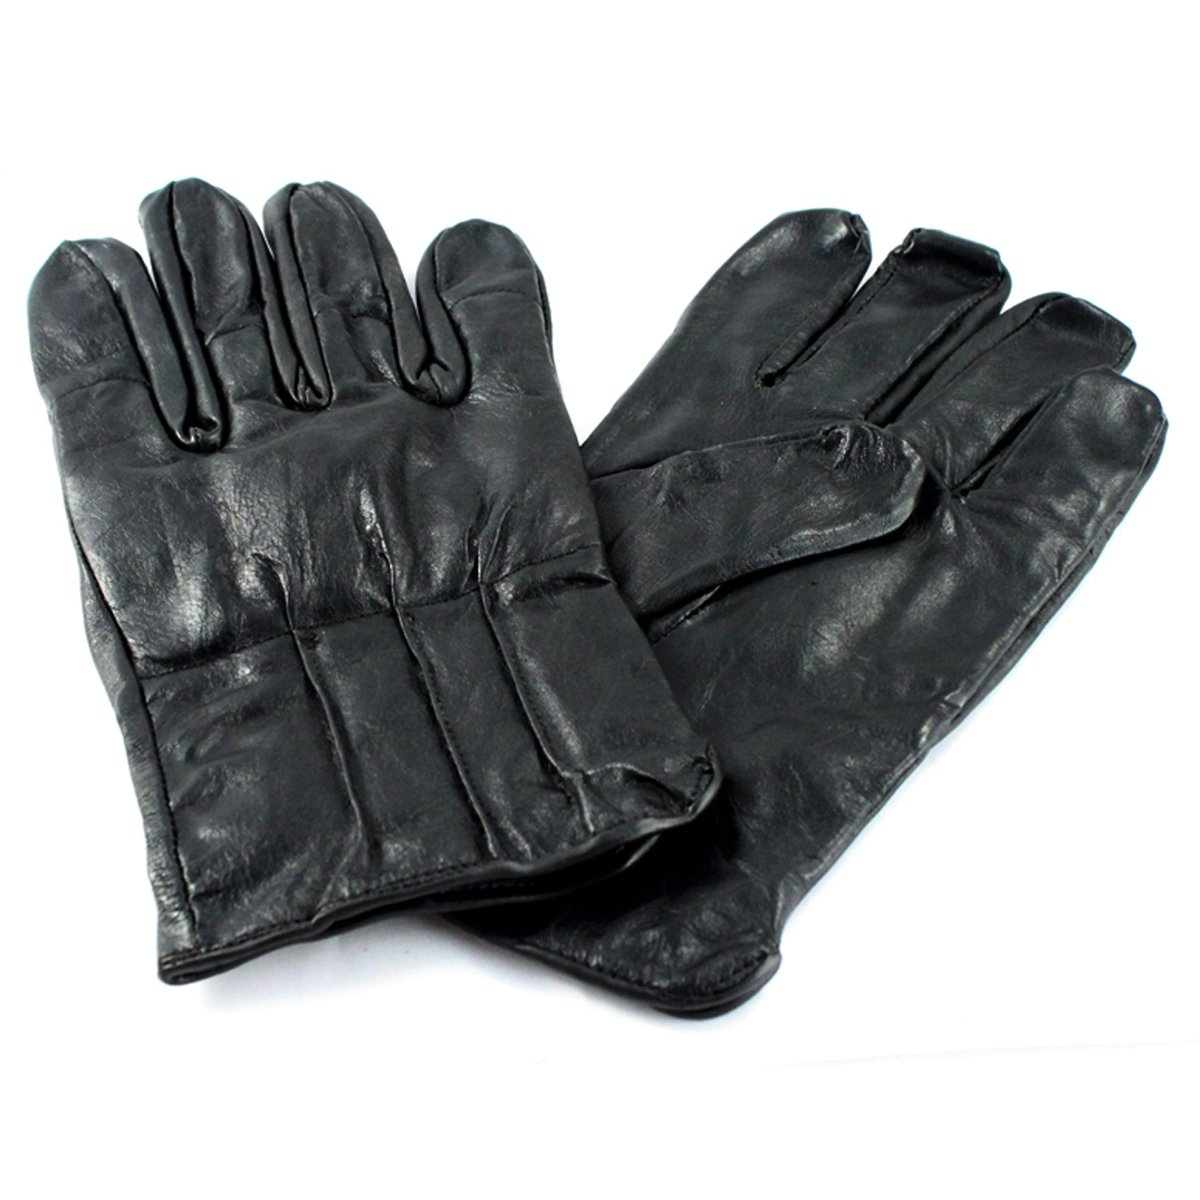 Full Finger Leather Defender Tactical Glove Law Enforcement 8oz Weight - Large